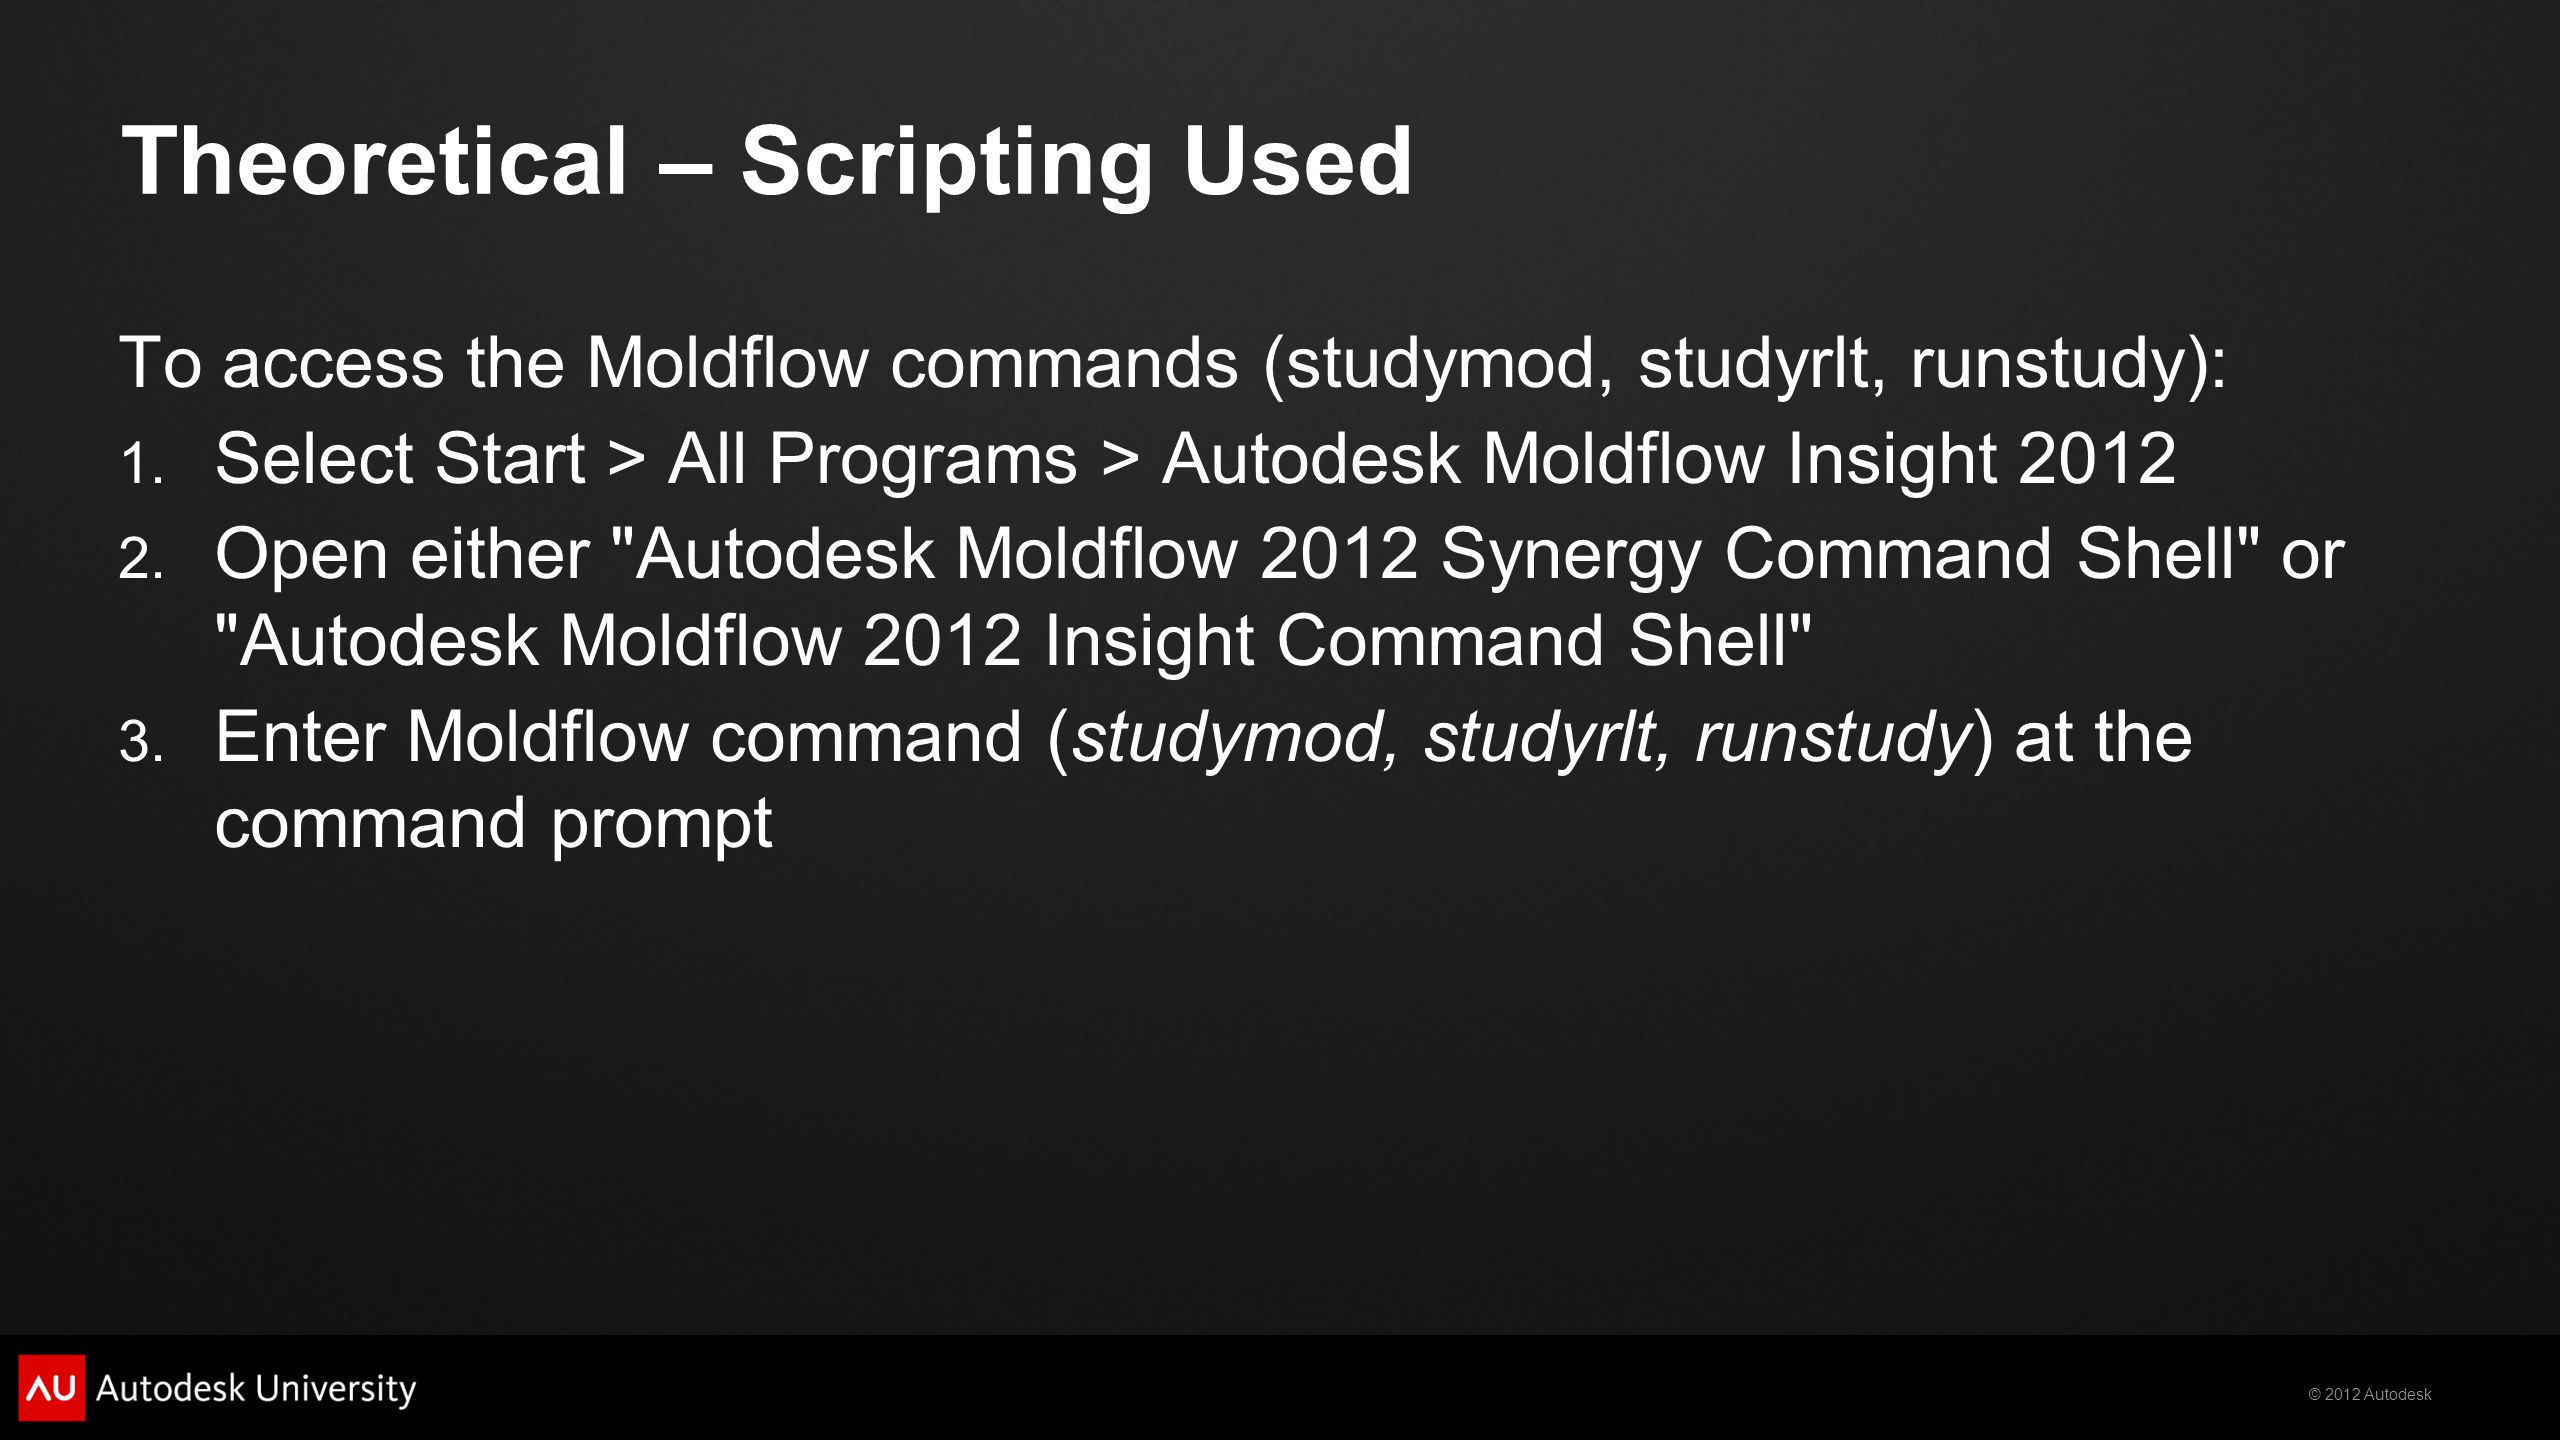 © 2012 Autodesk Theoretical – Scripting Used To access the Moldflow commands (studymod, studyrlt, runstudy): 1. Select Start > All Programs > Autodesk